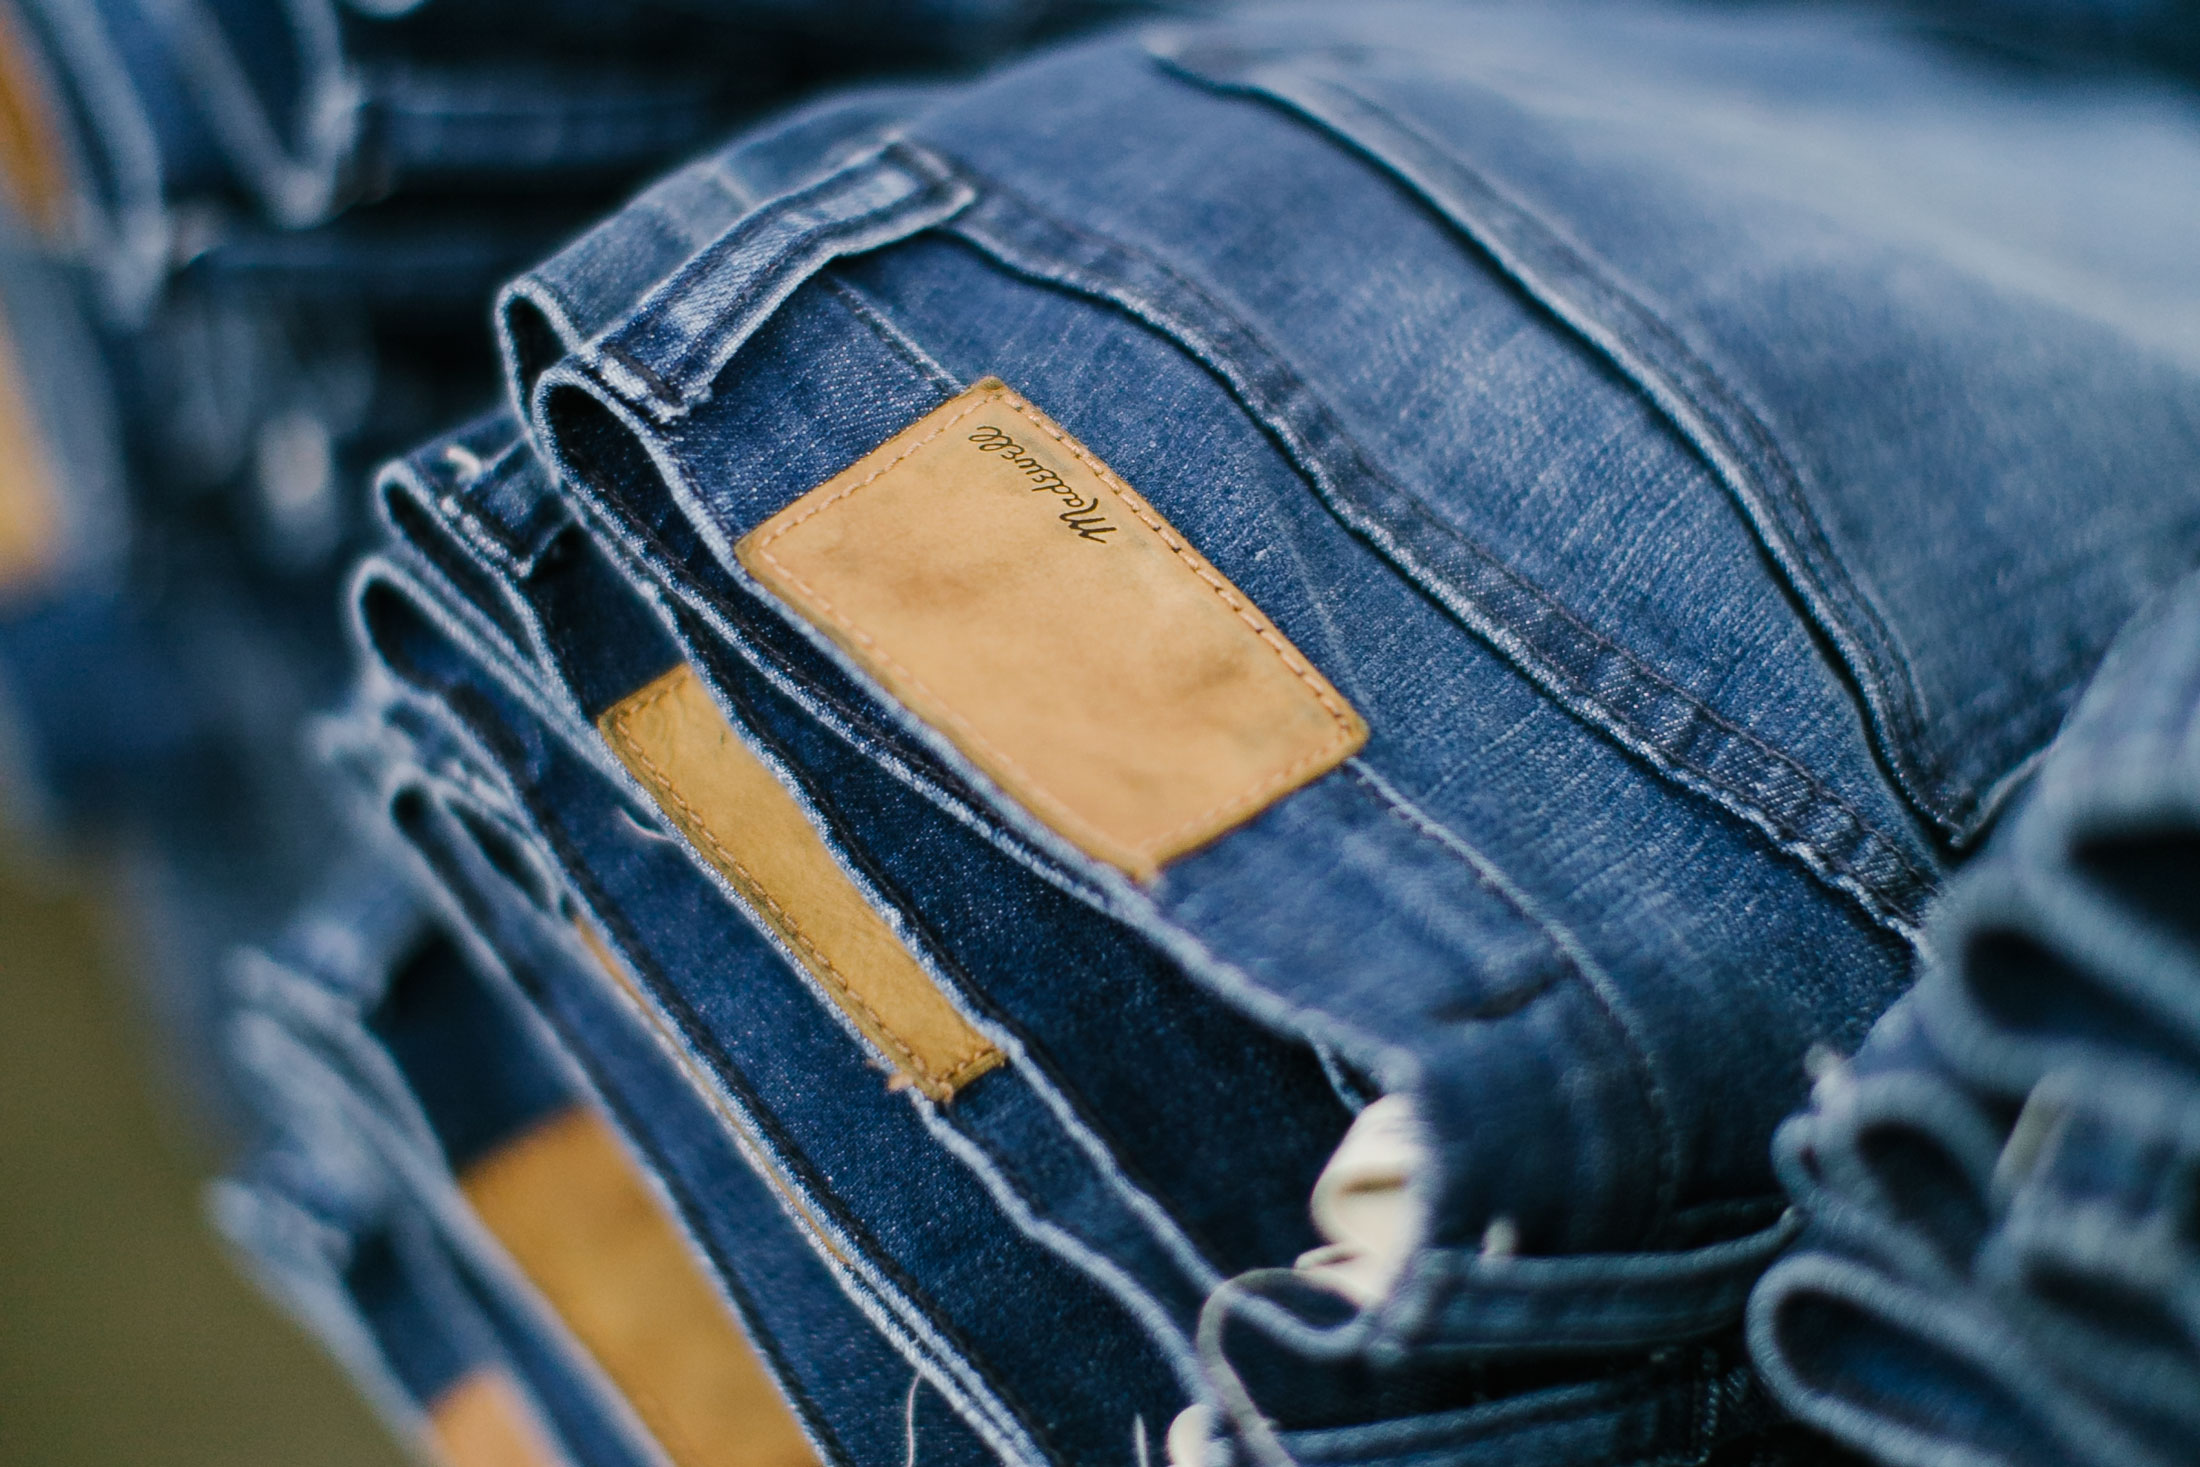 """After the wet and dry processing are completed, the jeans are reinforced at the seams, tagged, and finished. """"When you go back to that jean you feel like yourself. 'It's me, I'm comfortatable,"""" Lee says."""